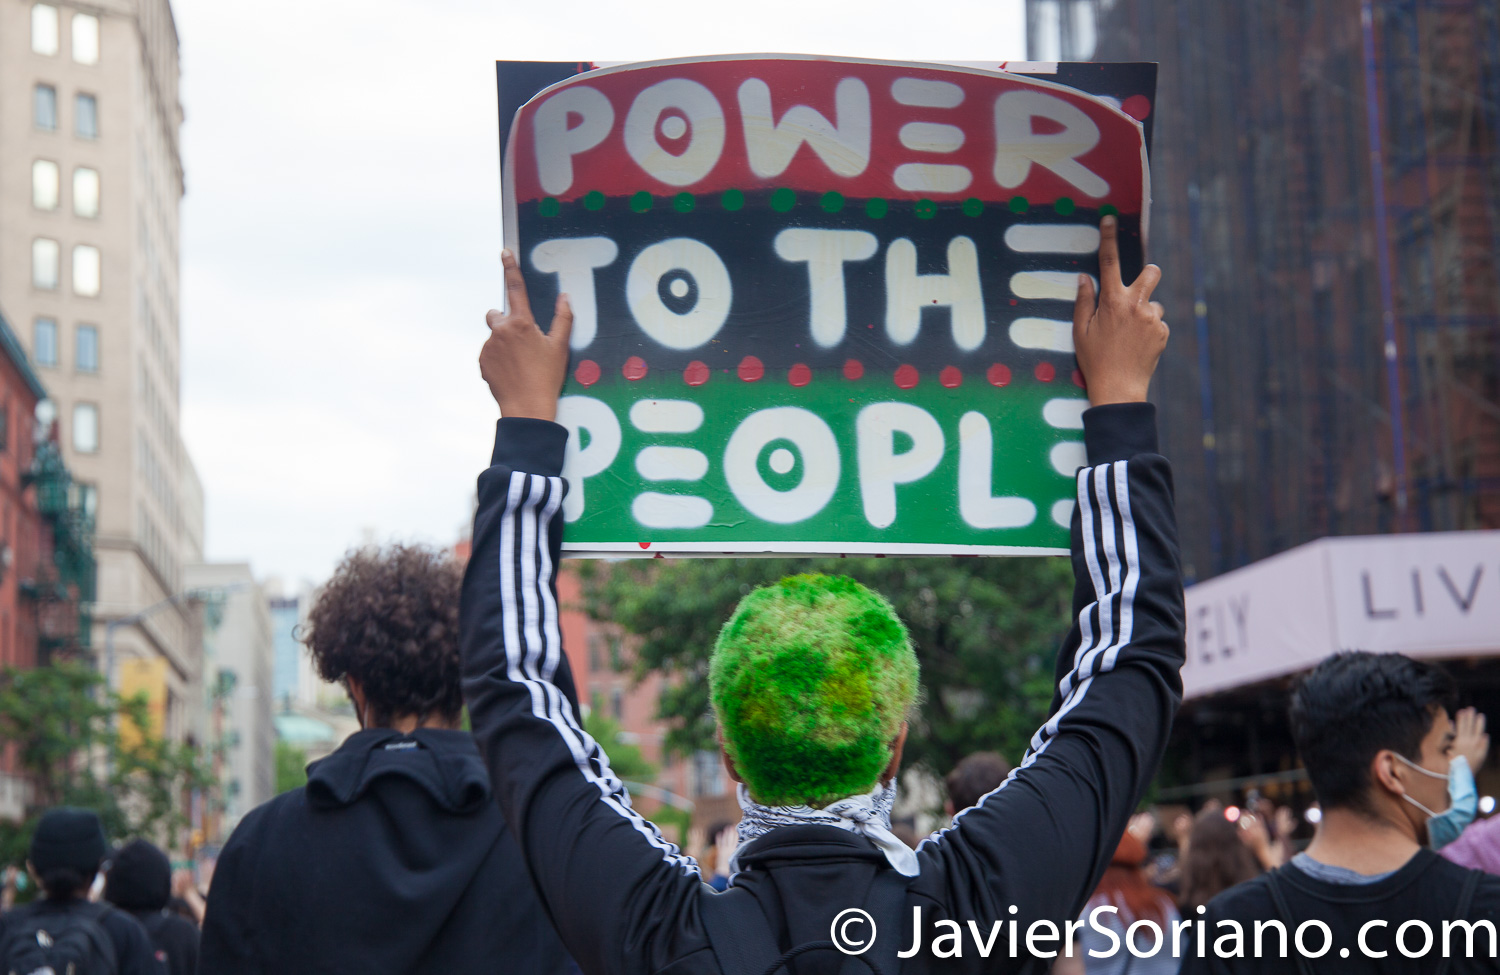 Tuesday, June 2, 2020. New York City - March from The Stonewall Inn to the Lower Manhattan to demand justice for George Floyd, Breonna Taylor, and too many others victims of police violence in the United States of America. Photo by Javier Soriano/www.JavierSoriano.com